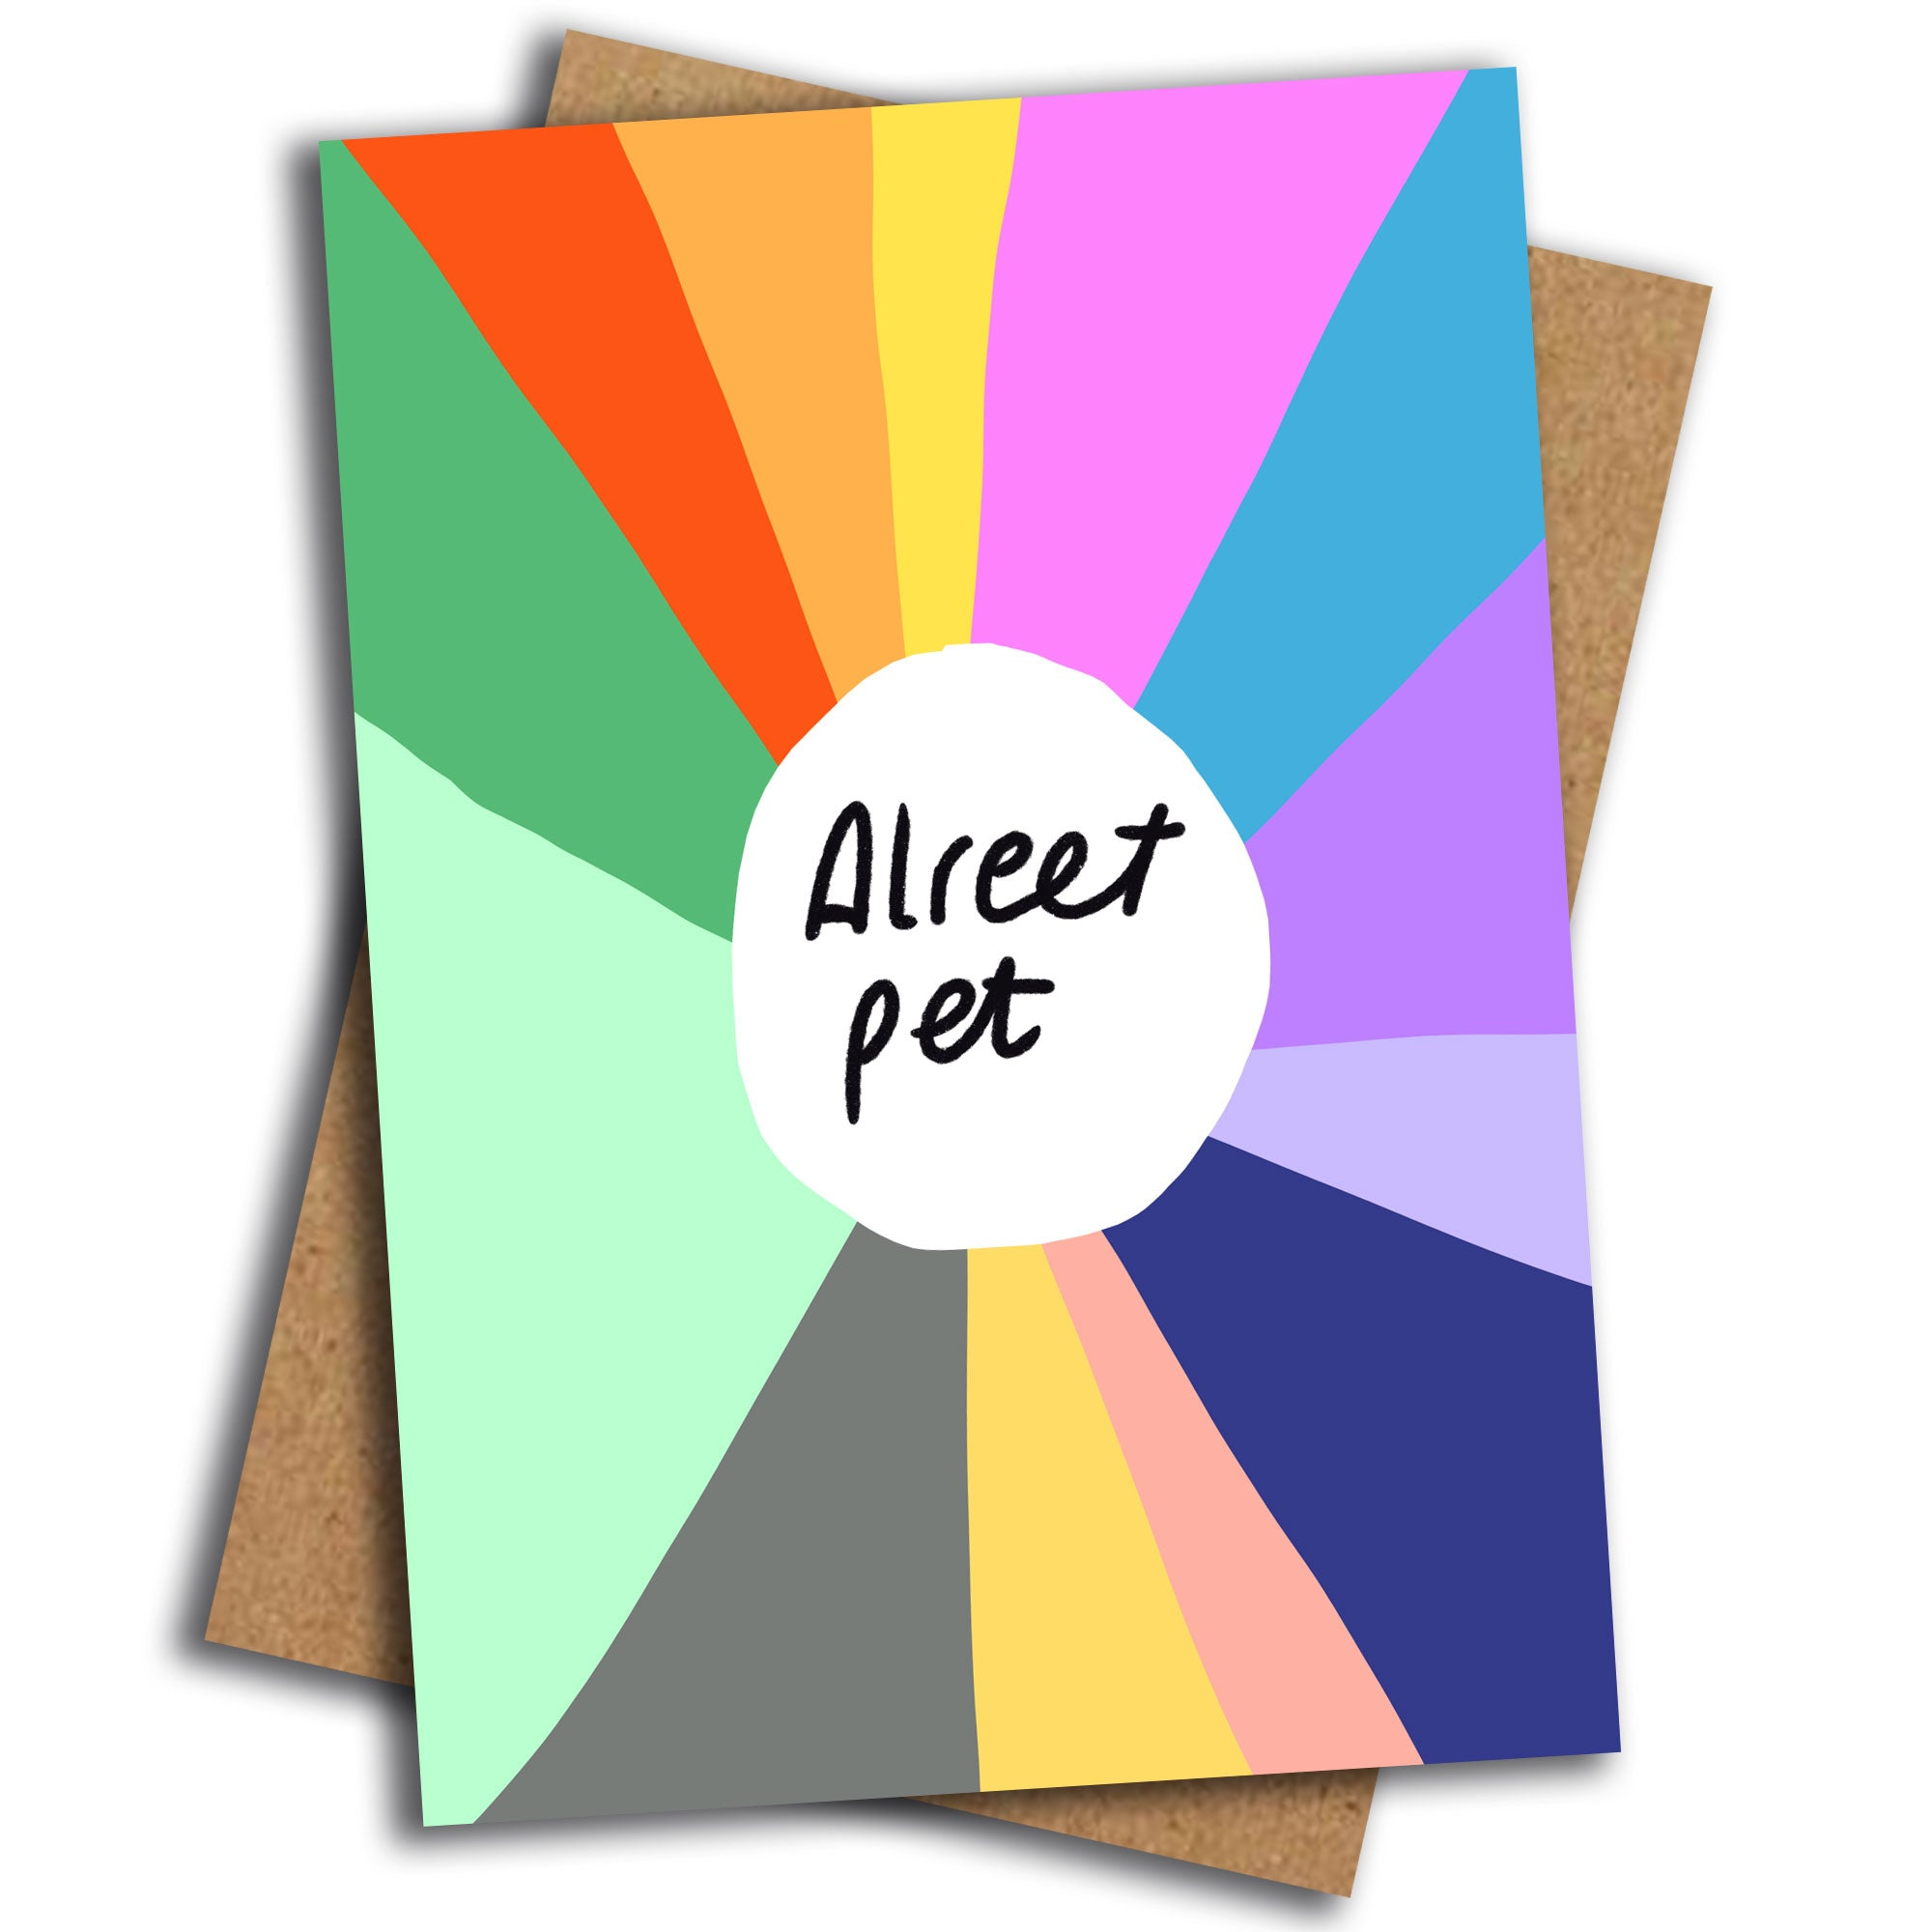 Alreet Pet card